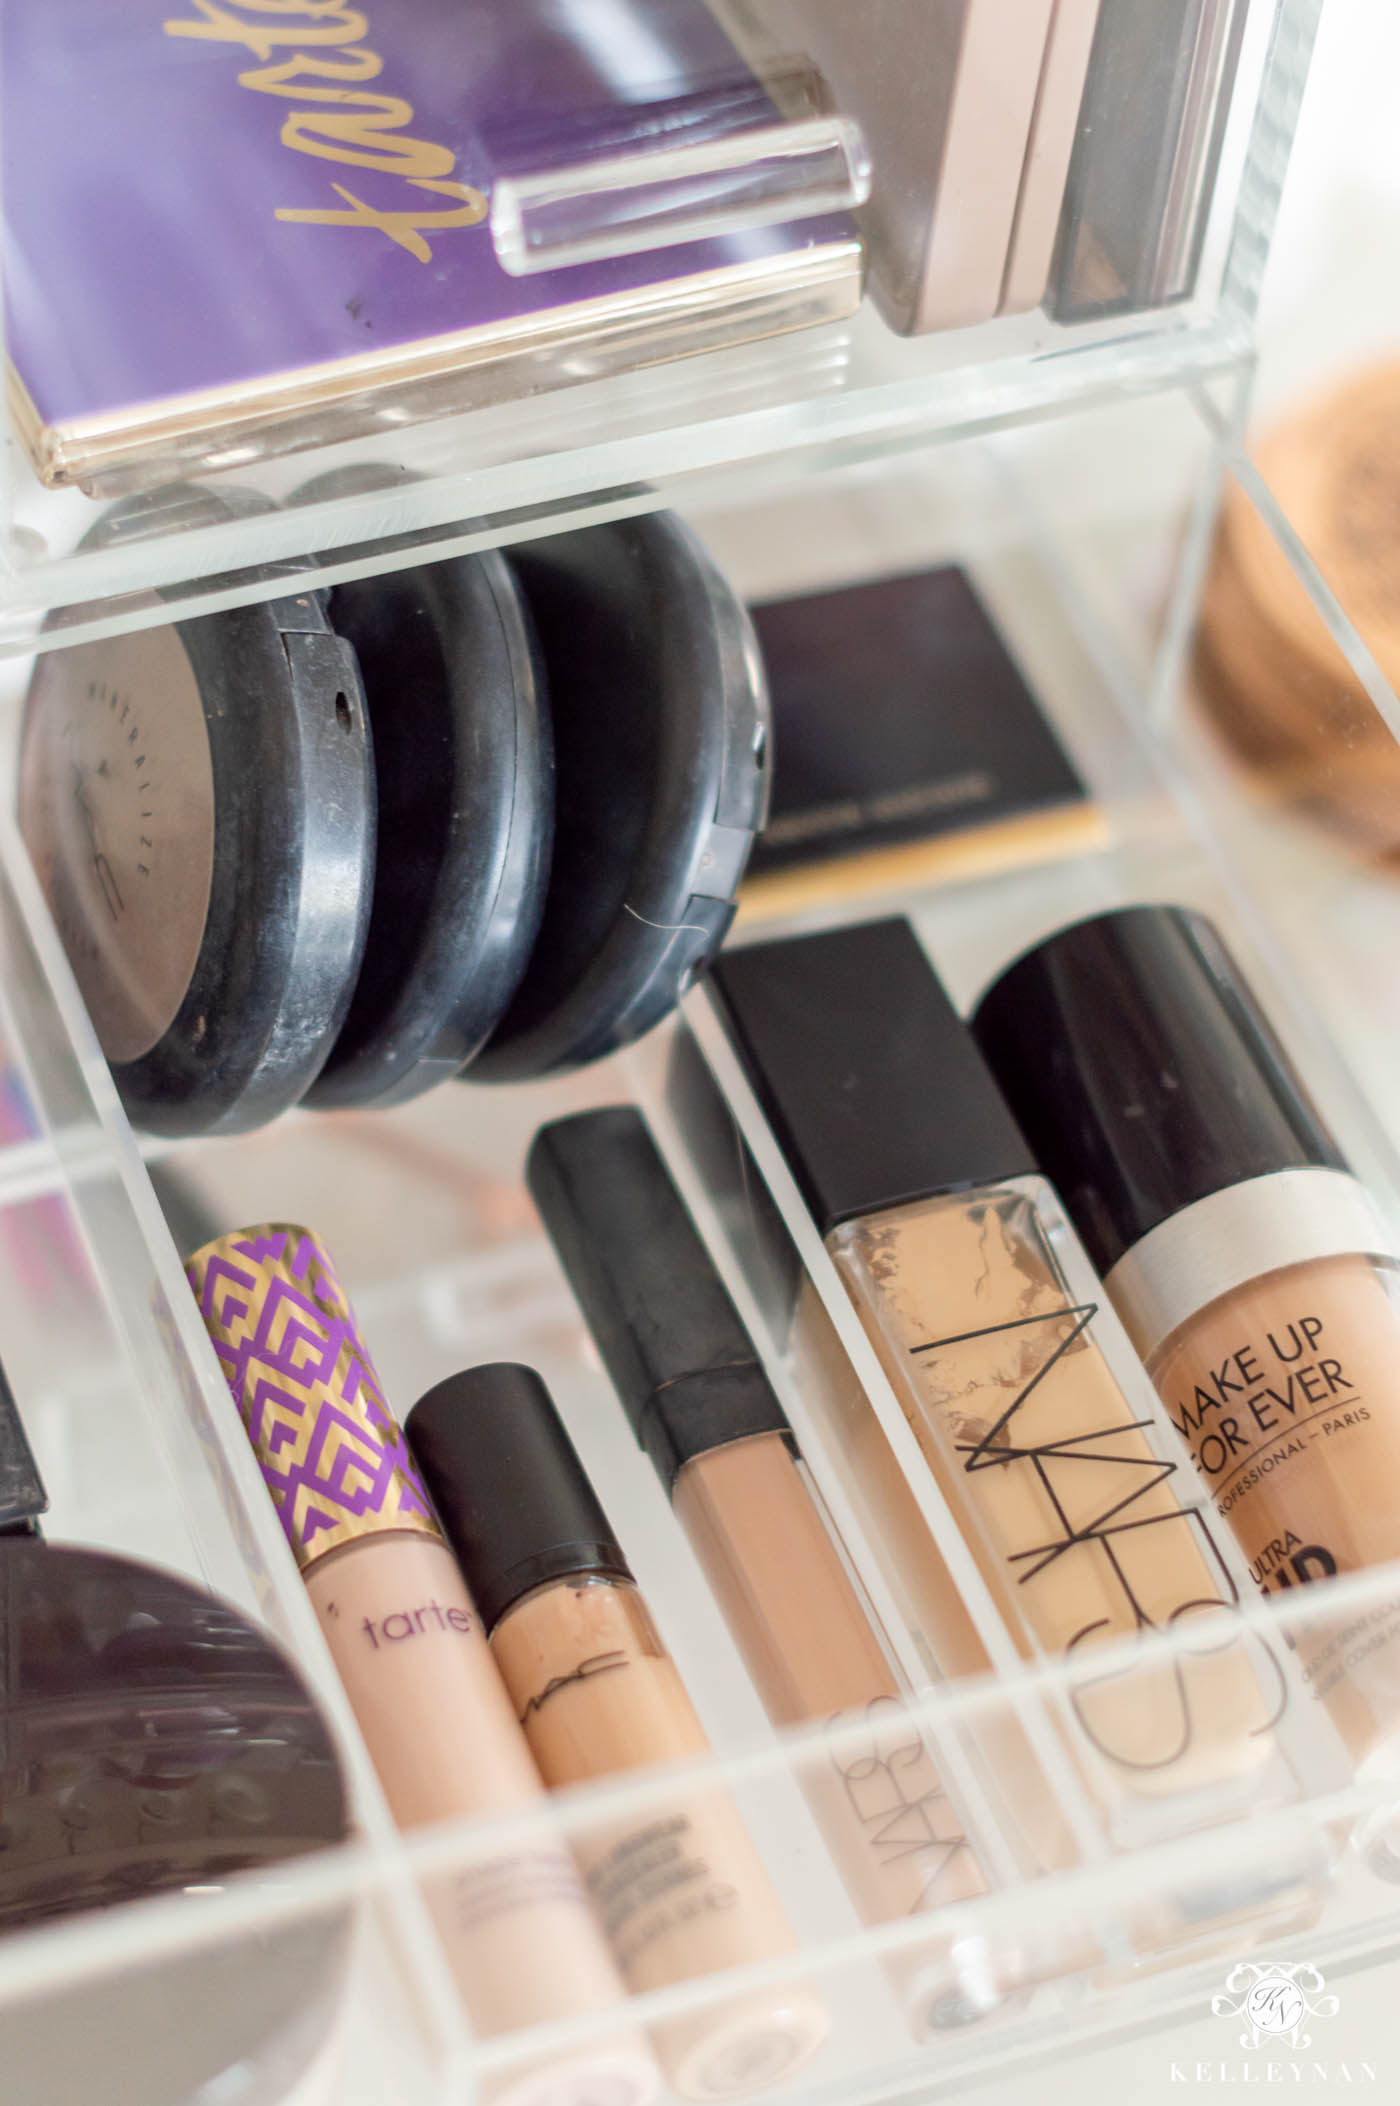 Acrylic Makeup Organizer & Ideas to Store Makeup on the Bathroom Counter